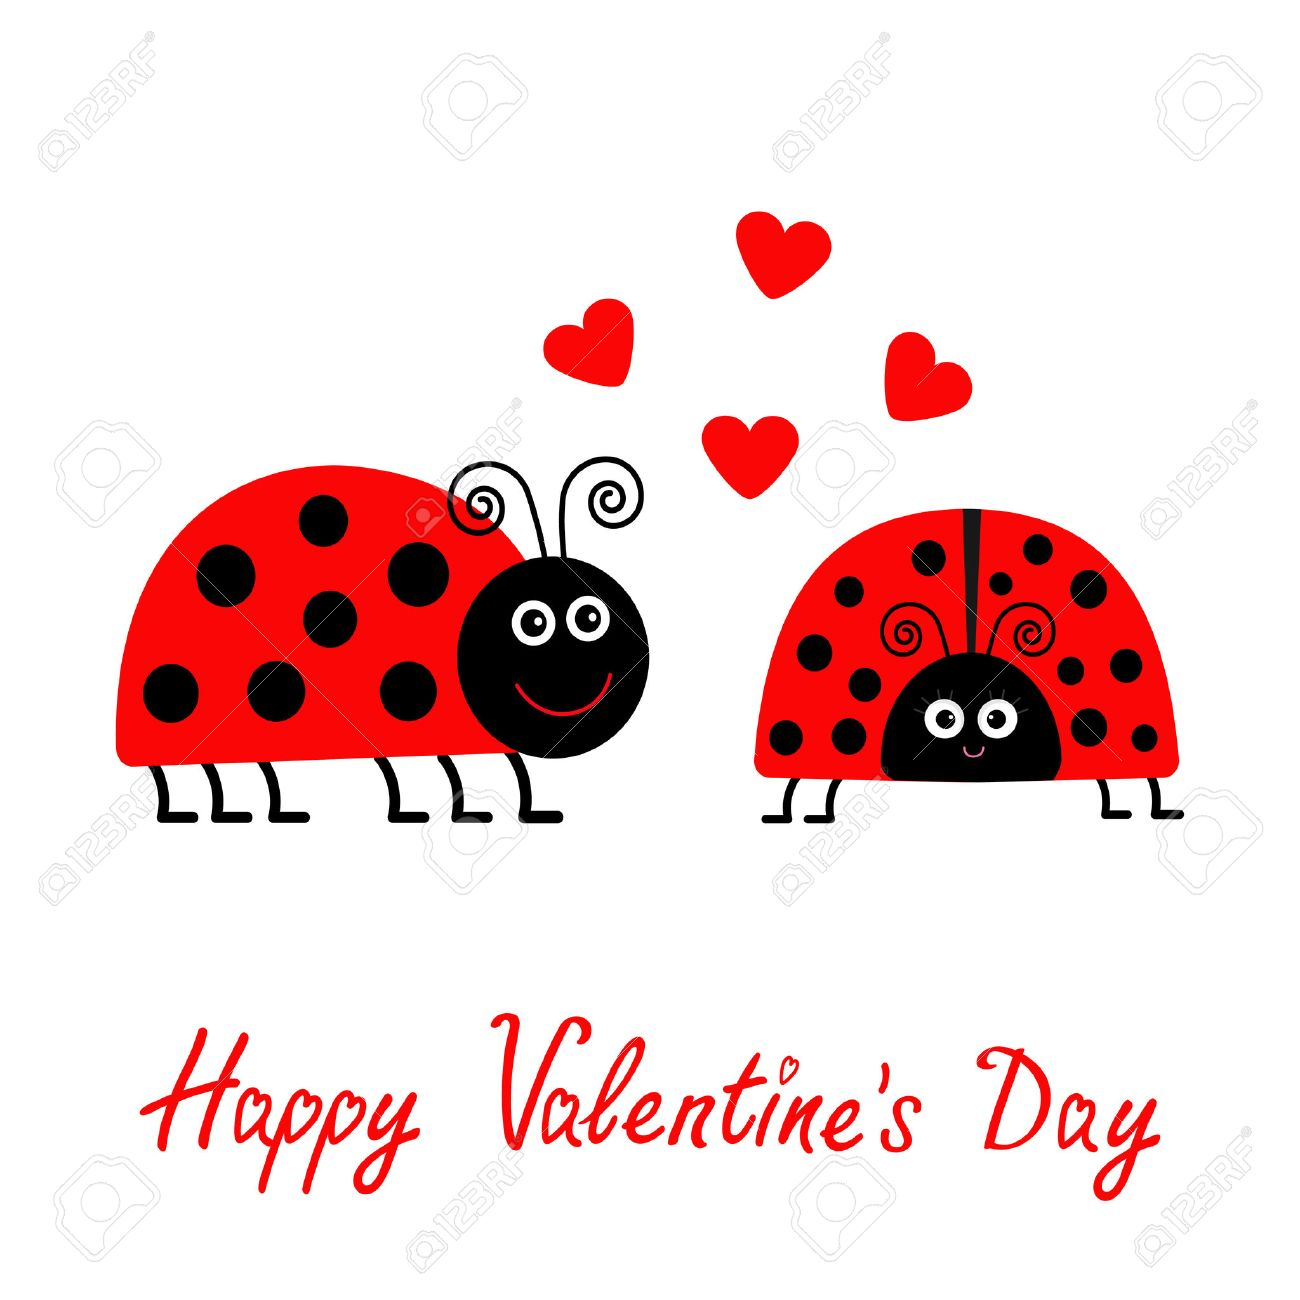 Happy Valentines Day Love Card Two Cartoon Pink Lady Bug Couple